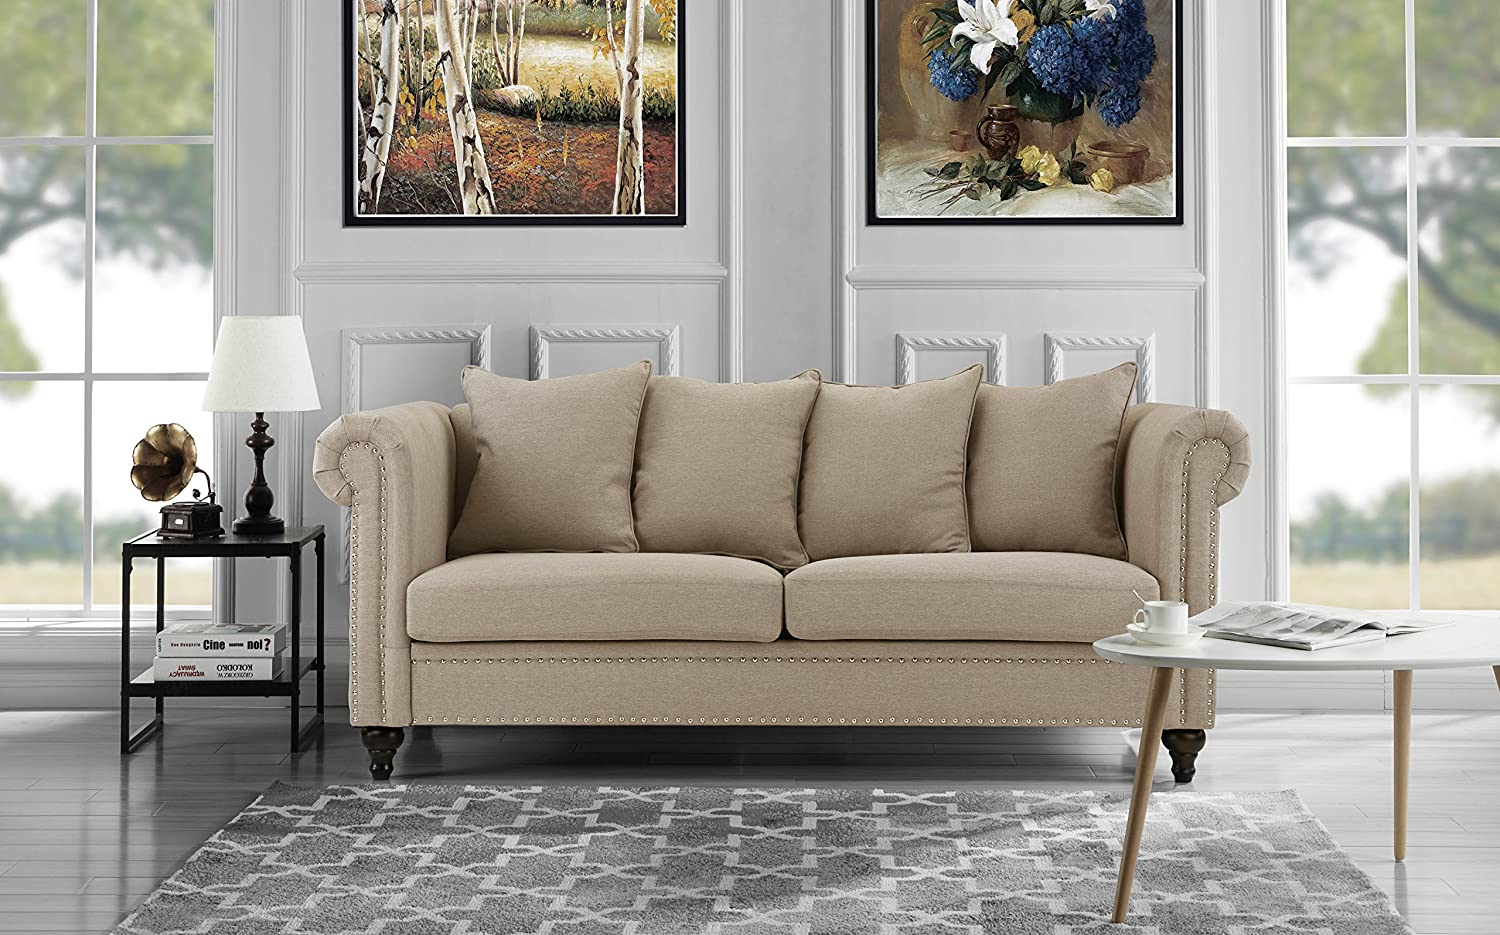 Amazon com classic chesterfield scroll arm linen living room sofa with nailhead trim beige kitchen dining